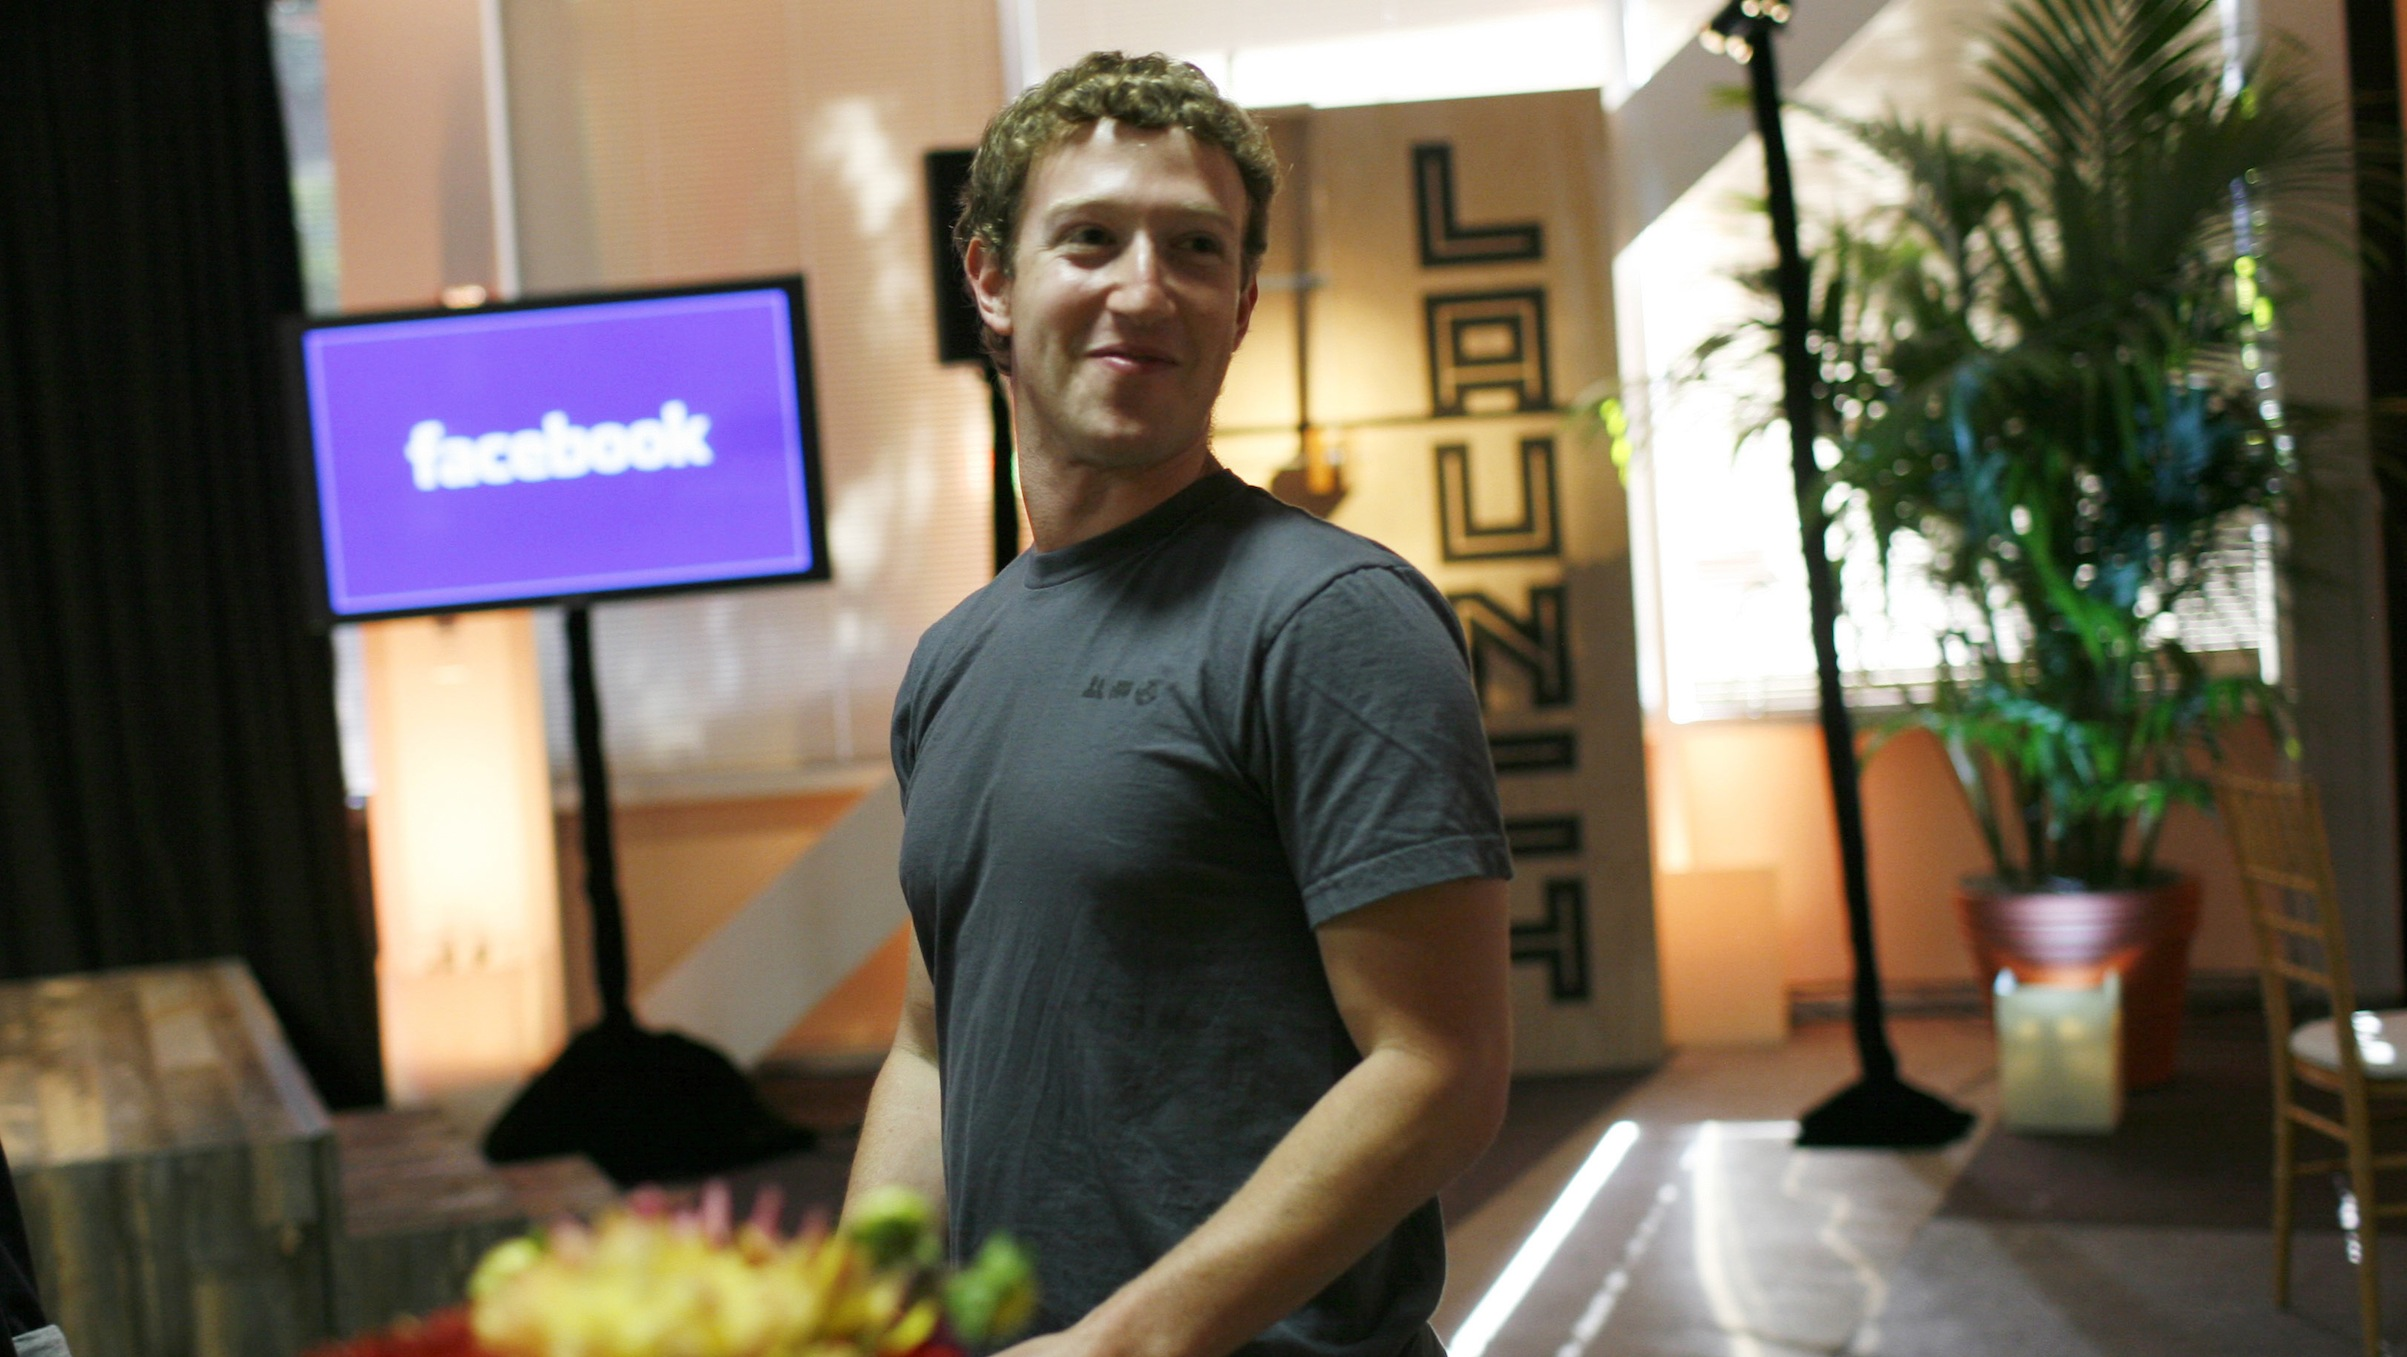 """Facebook CEO Mark Zuckerberg walks through Facebook headquarters prior to unveiling the company's new location services feature called """"Places"""" at a news conference in Palo Alto, California August 18, 2010.  REUTERS/Robert Galbraith  (UNITED STATES - Tags: BUSINESS SCI TECH) - RTR2HEBN"""